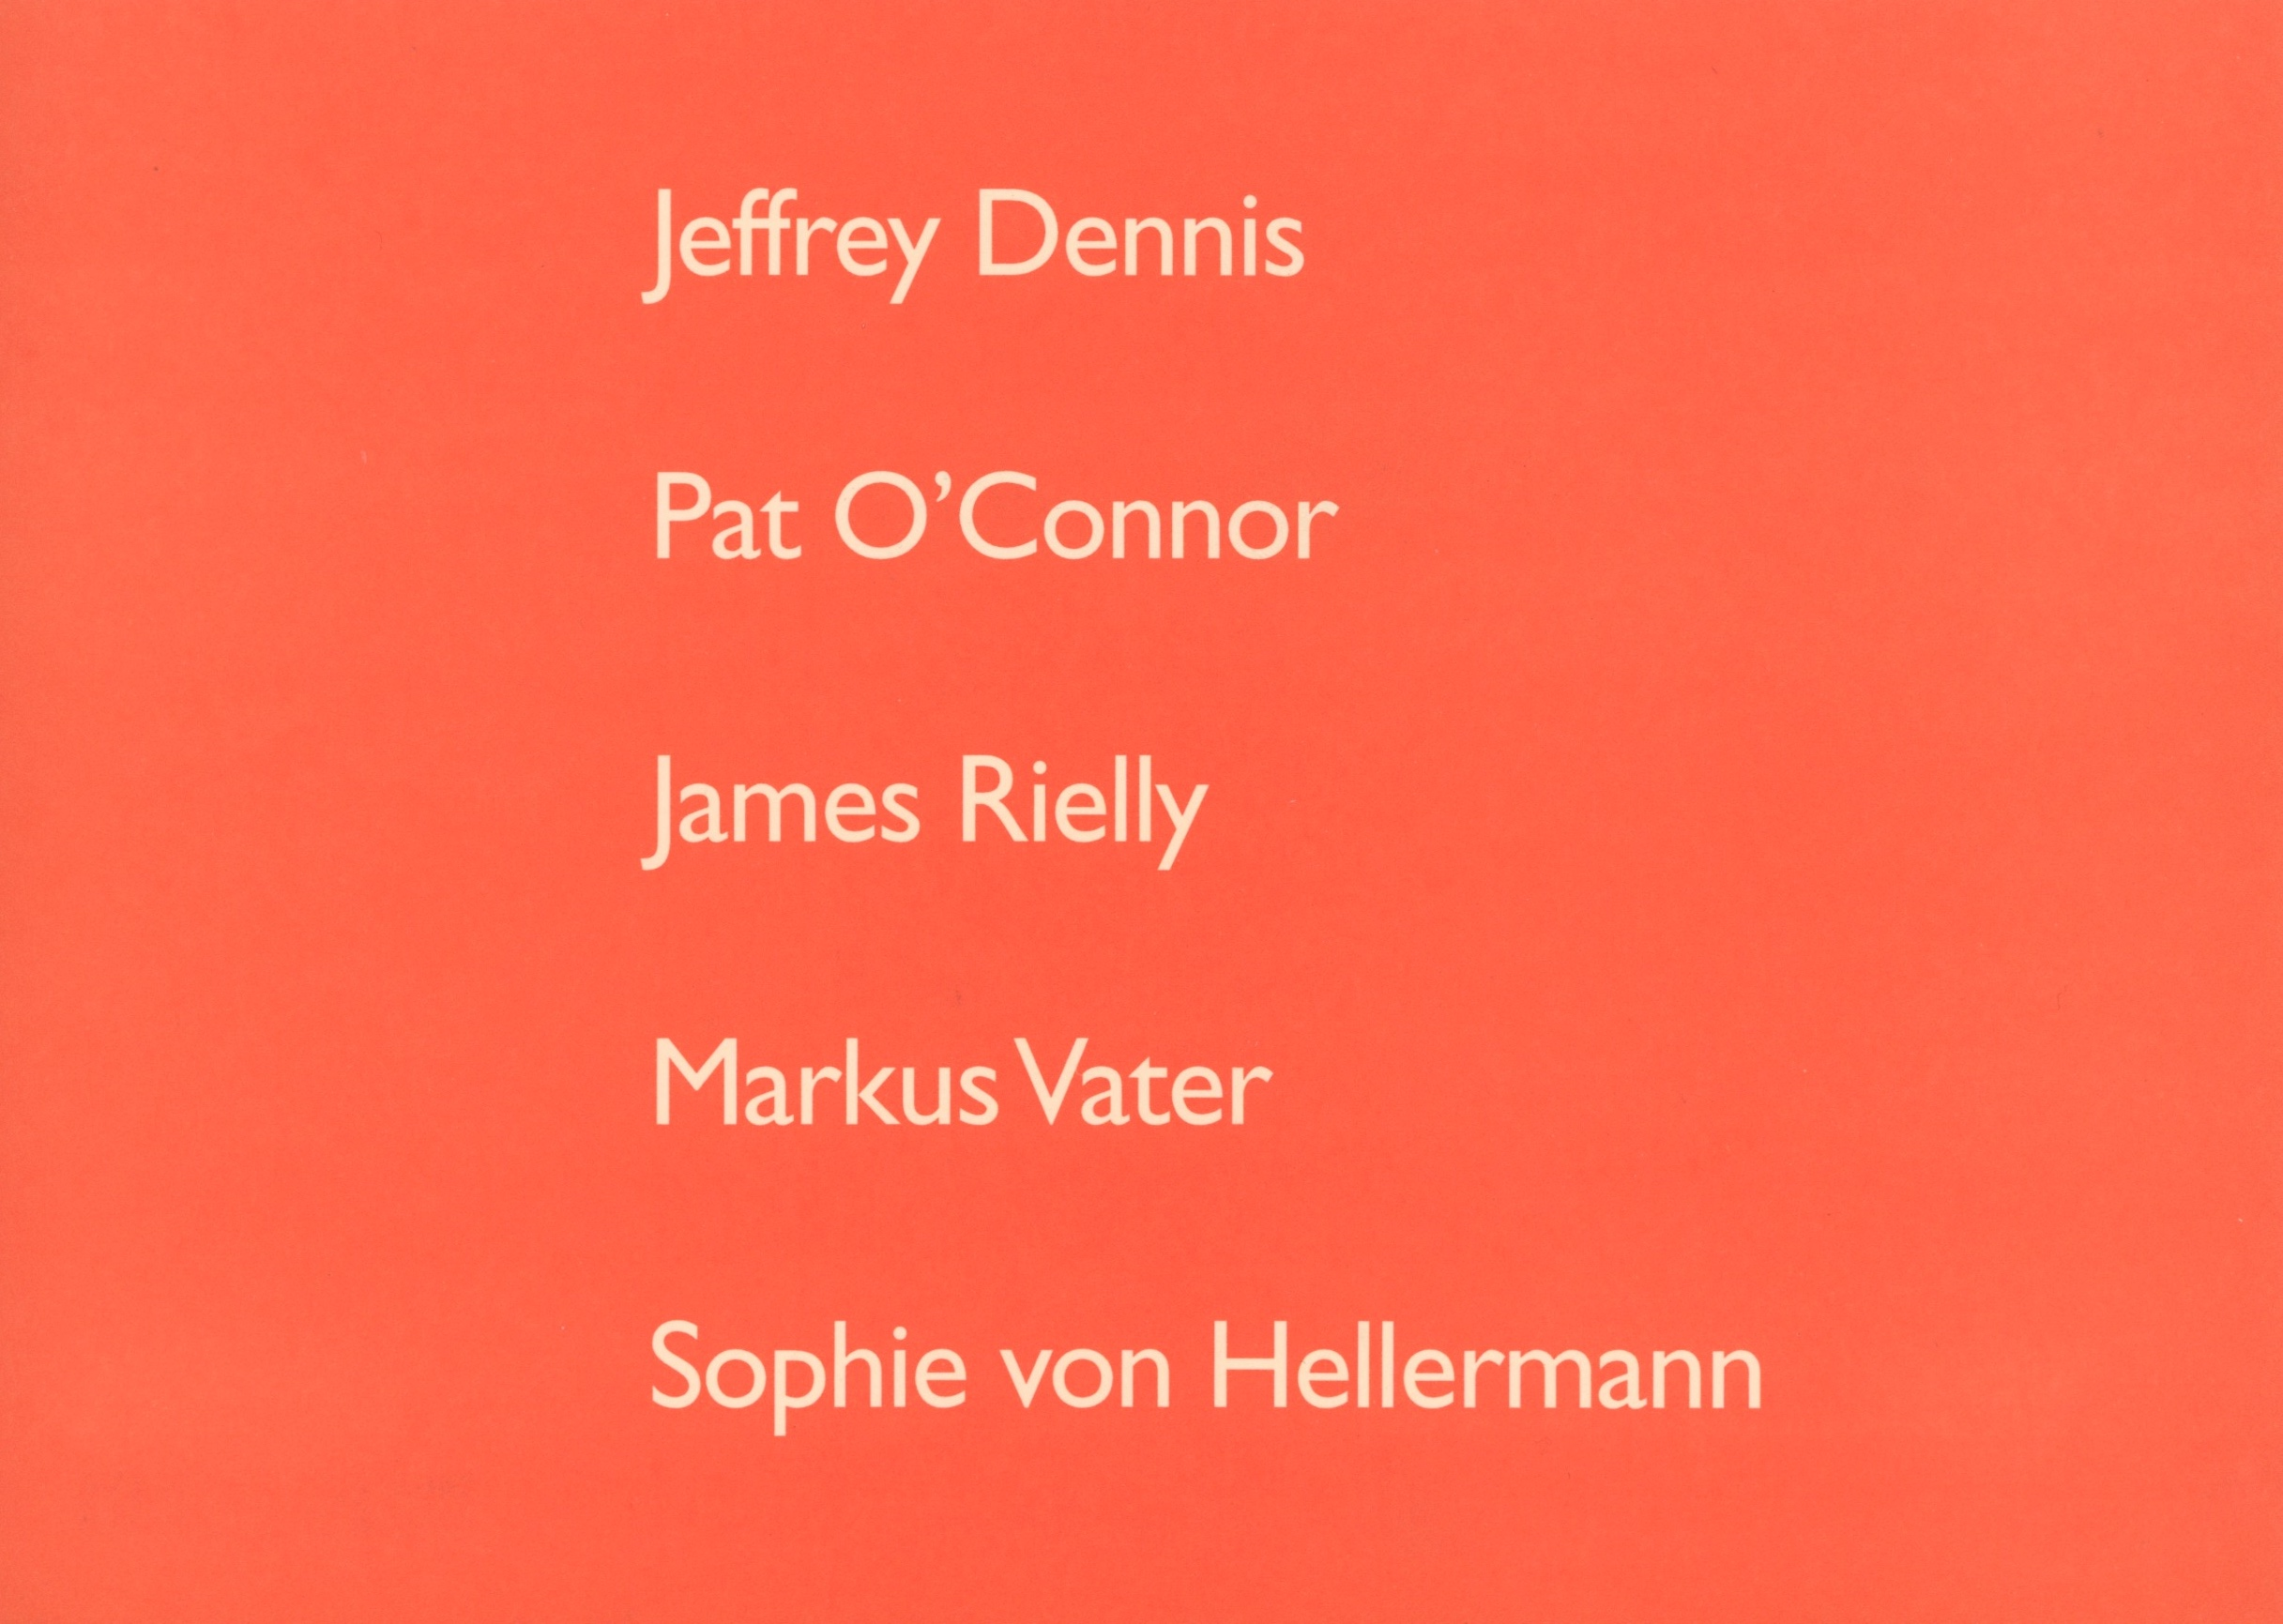 James Rielly - Jeffrey Dennis - Pat O'Connor –  Sophie von Hellermann - Markus Vater